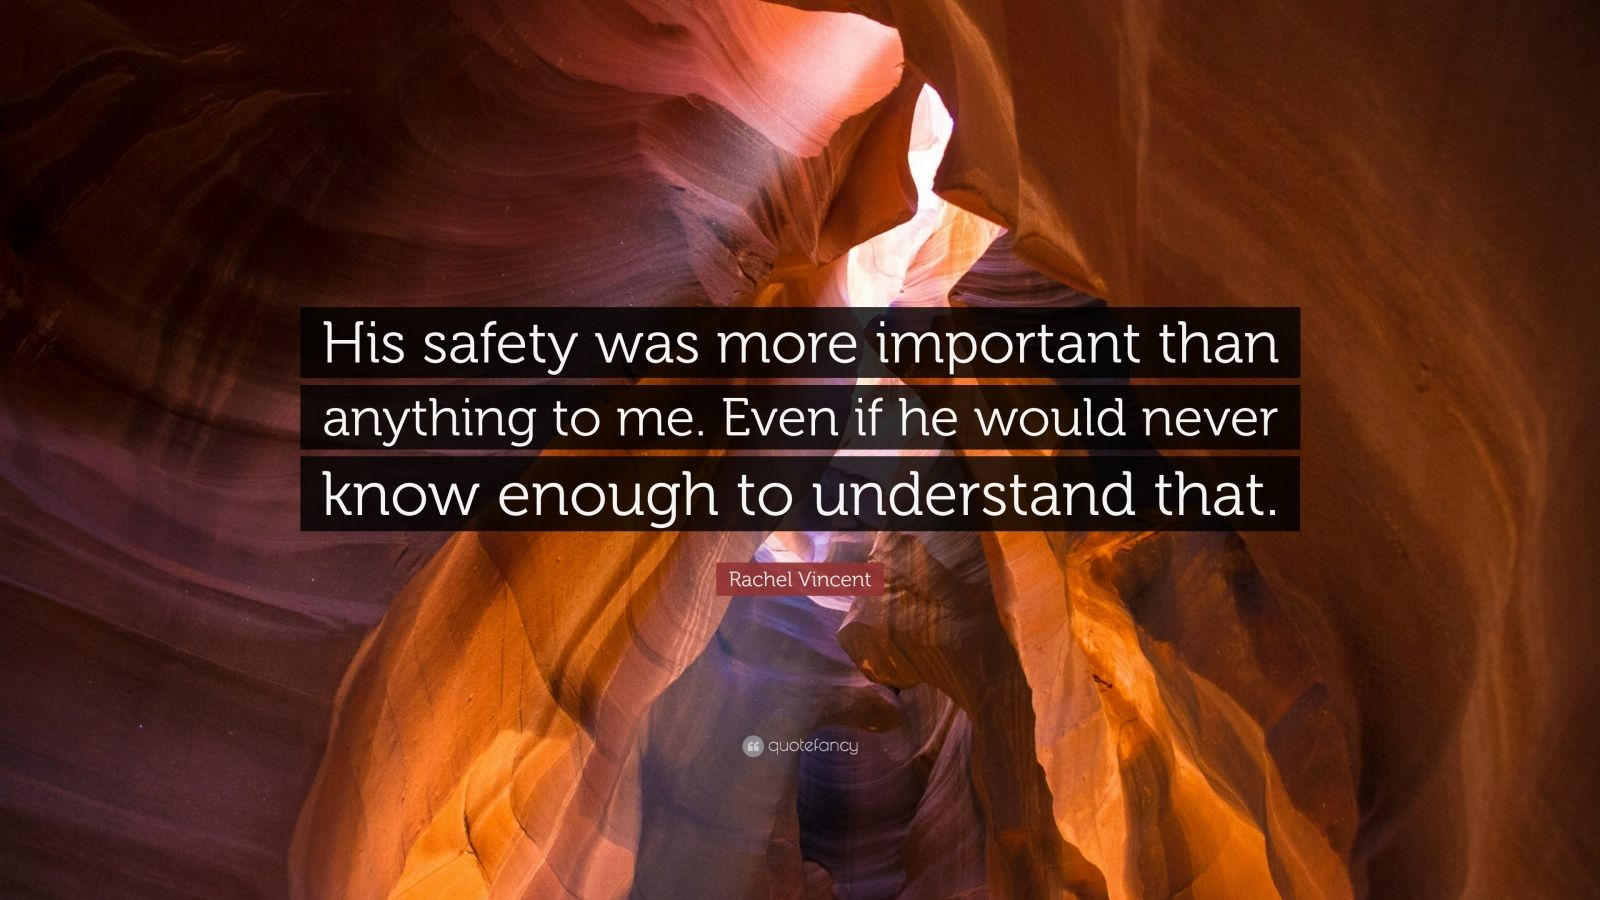 """Rachel Vincent Quote: """"His safety was more important than anything to me. Even if he would never know enough to understand that."""""""